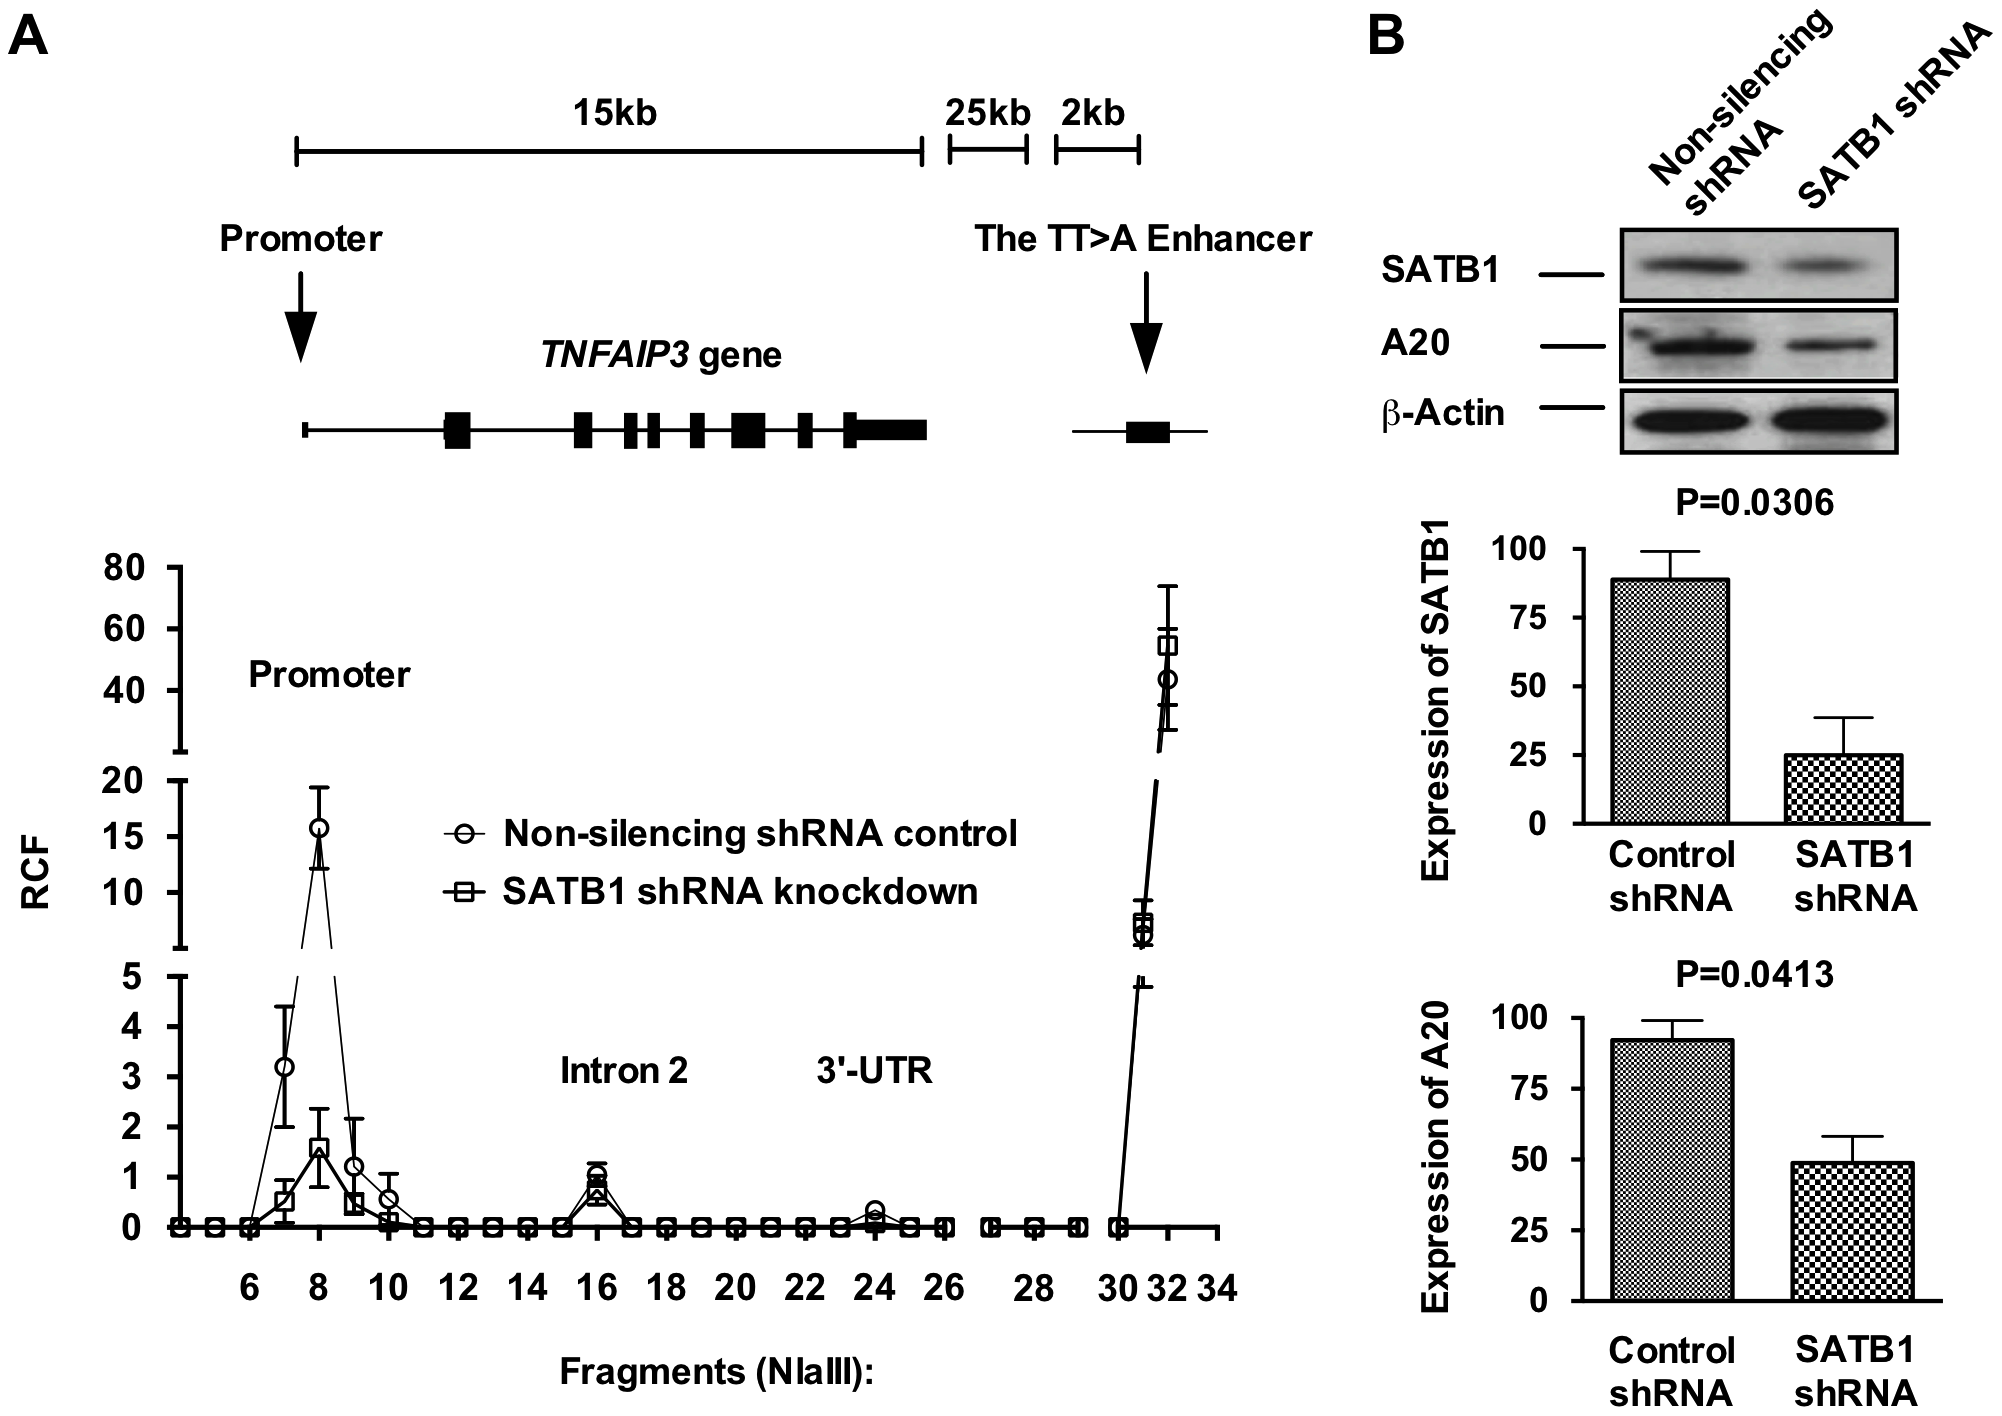 SATB1 is required for the TT&gt;A enhancer-promoter interaction and <i>TNFAIP3</i> transcription.